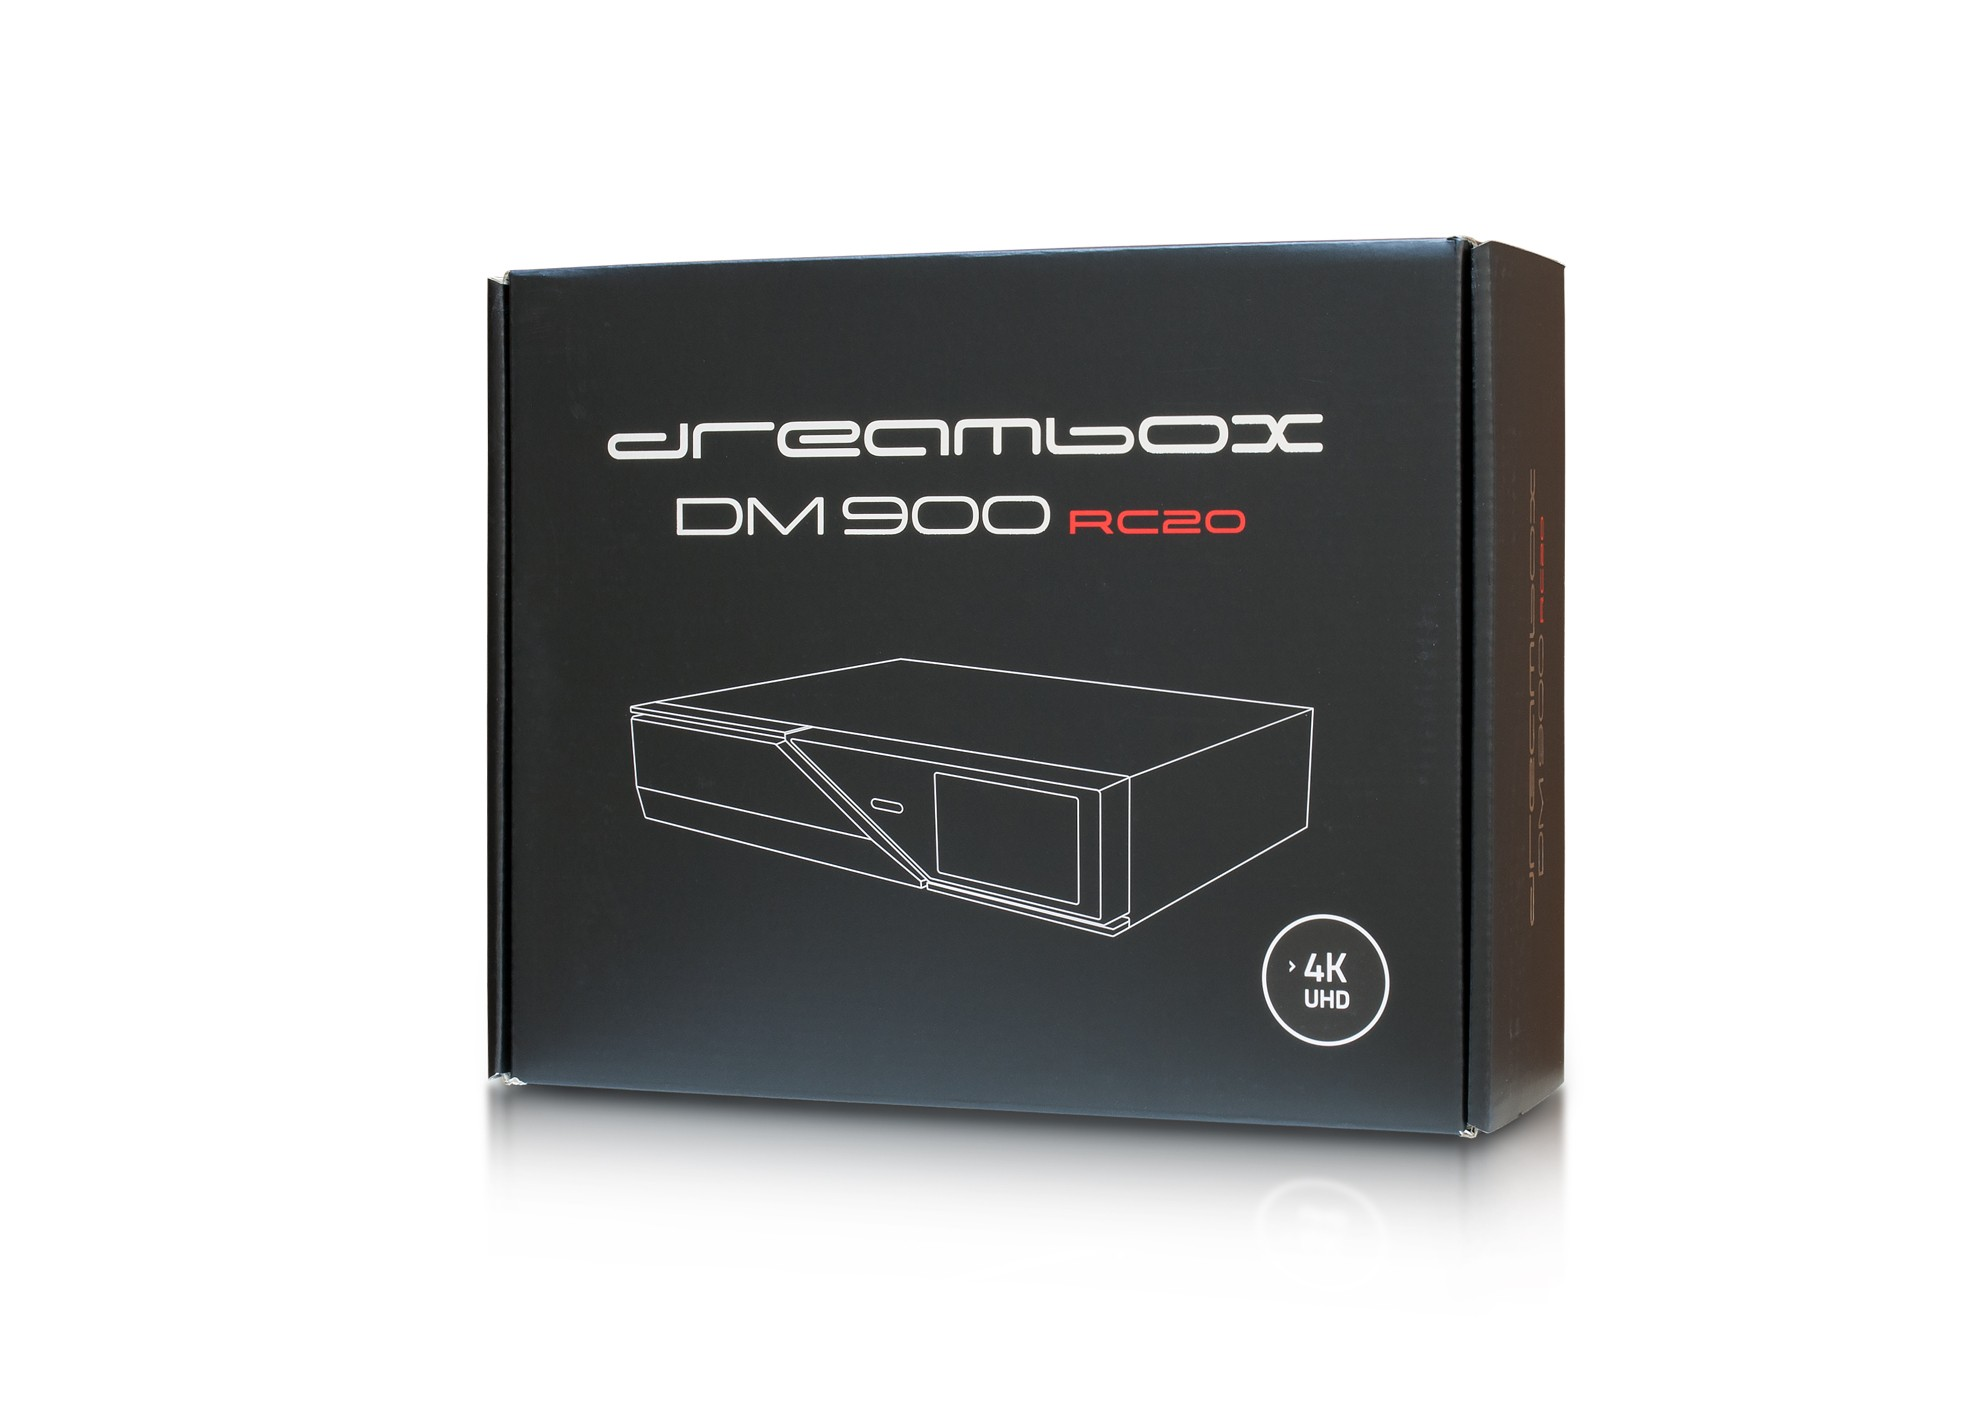 Dreambox DM-900 RC20 4K MS (2x DVB-S2X, DVB-C/T2)